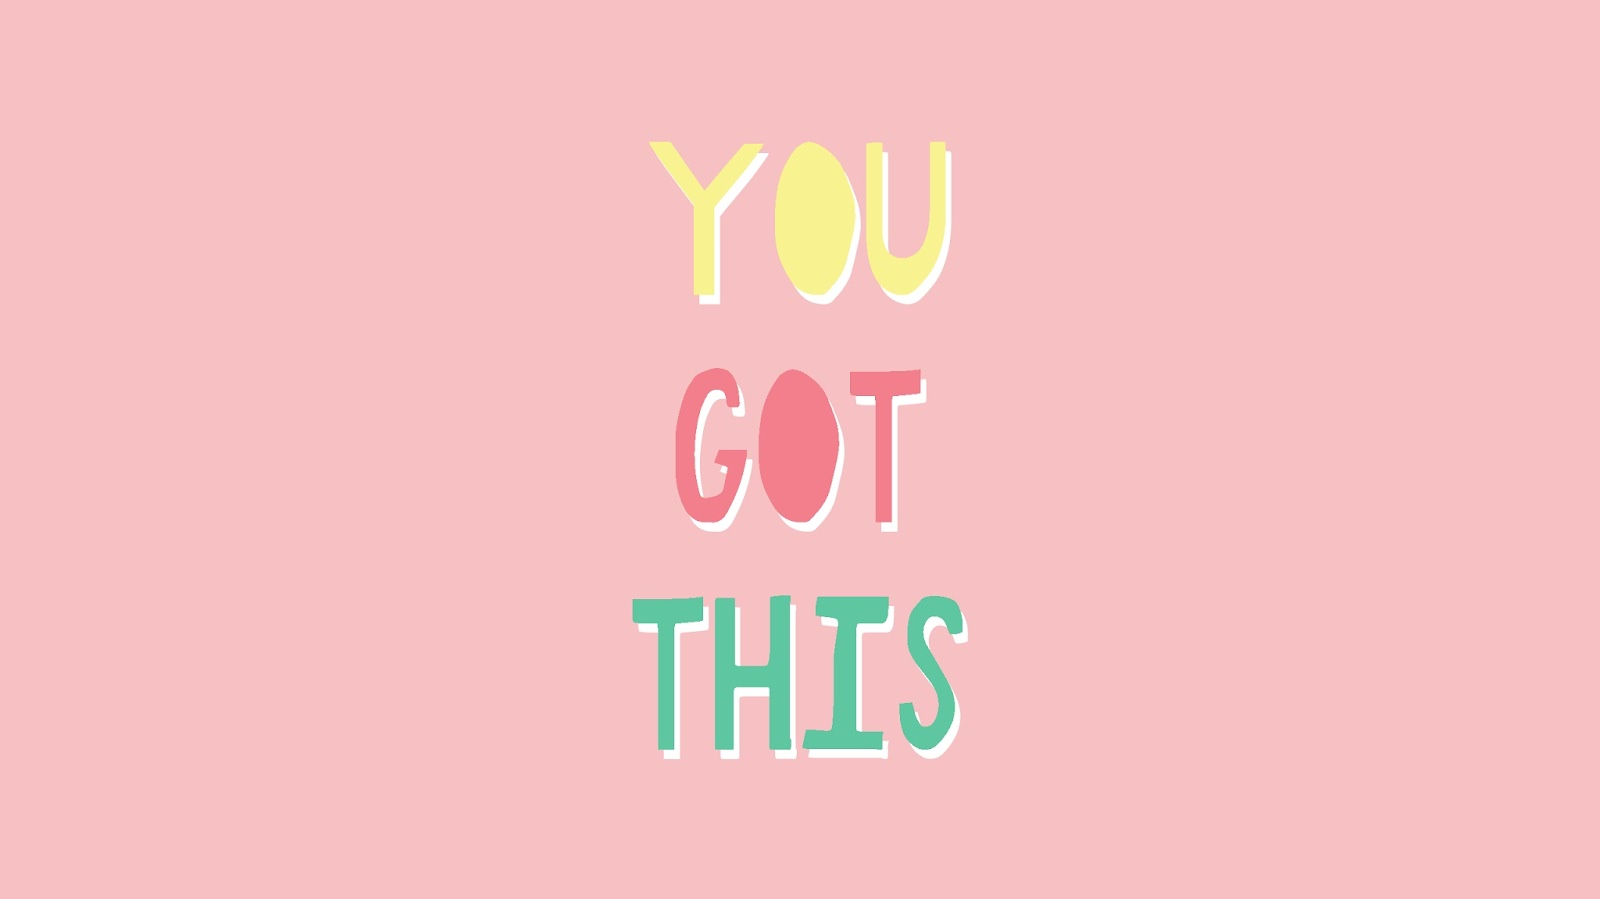 'YOU GOT THIS' - 9 PRETTY PASTEL DESKTOP AND PHONE WALLPAPERS FOR SPRING.